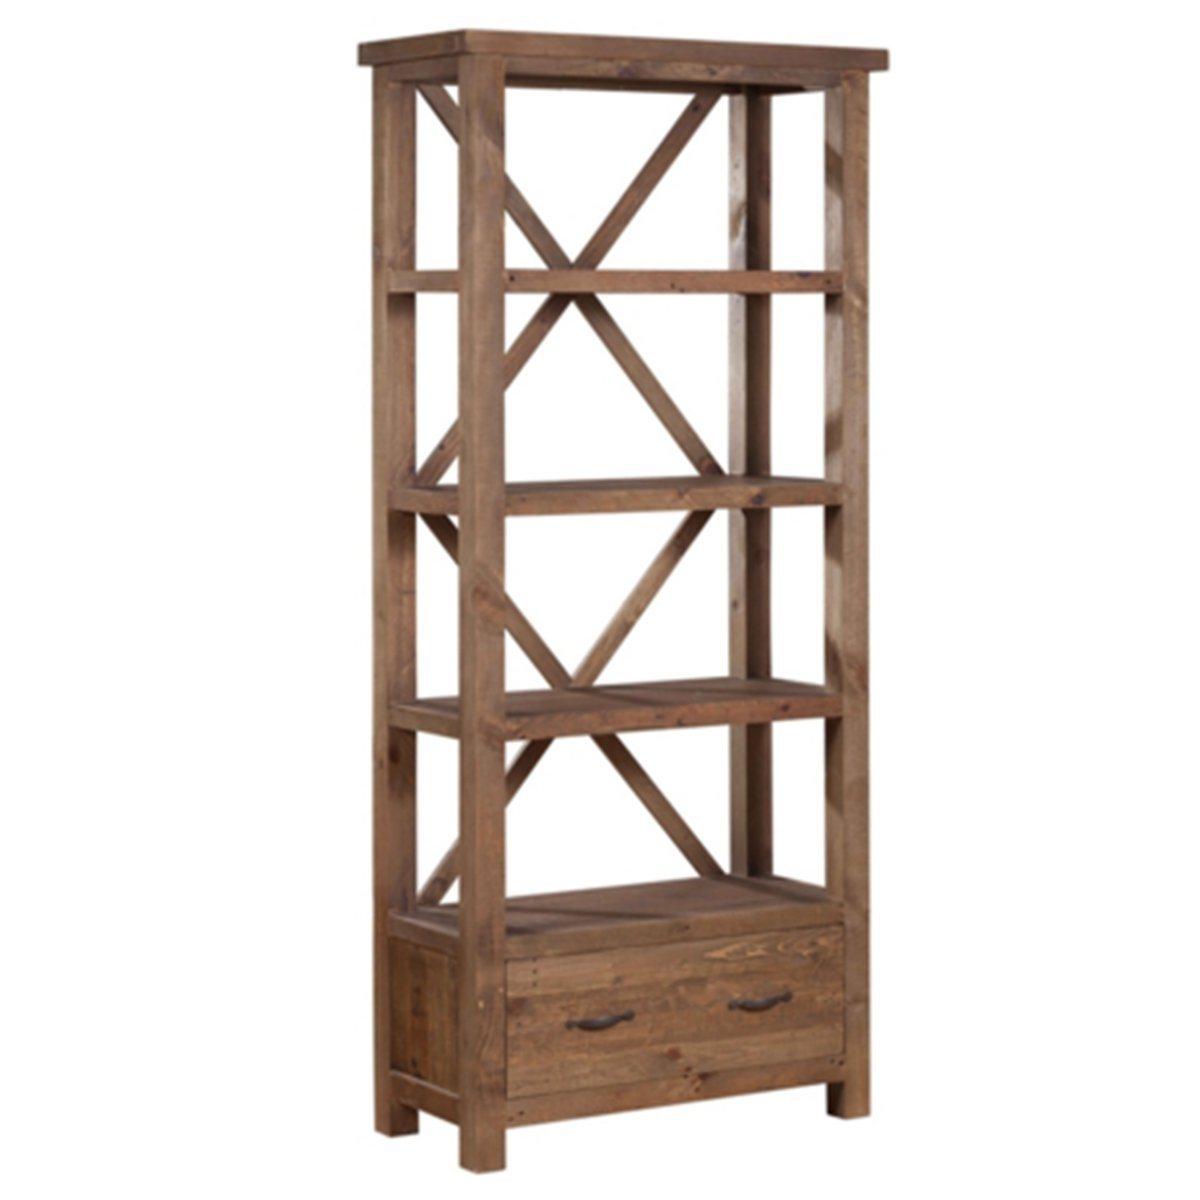 Alfresco Bookcase - Rustic Tawny - Showhome Furniture